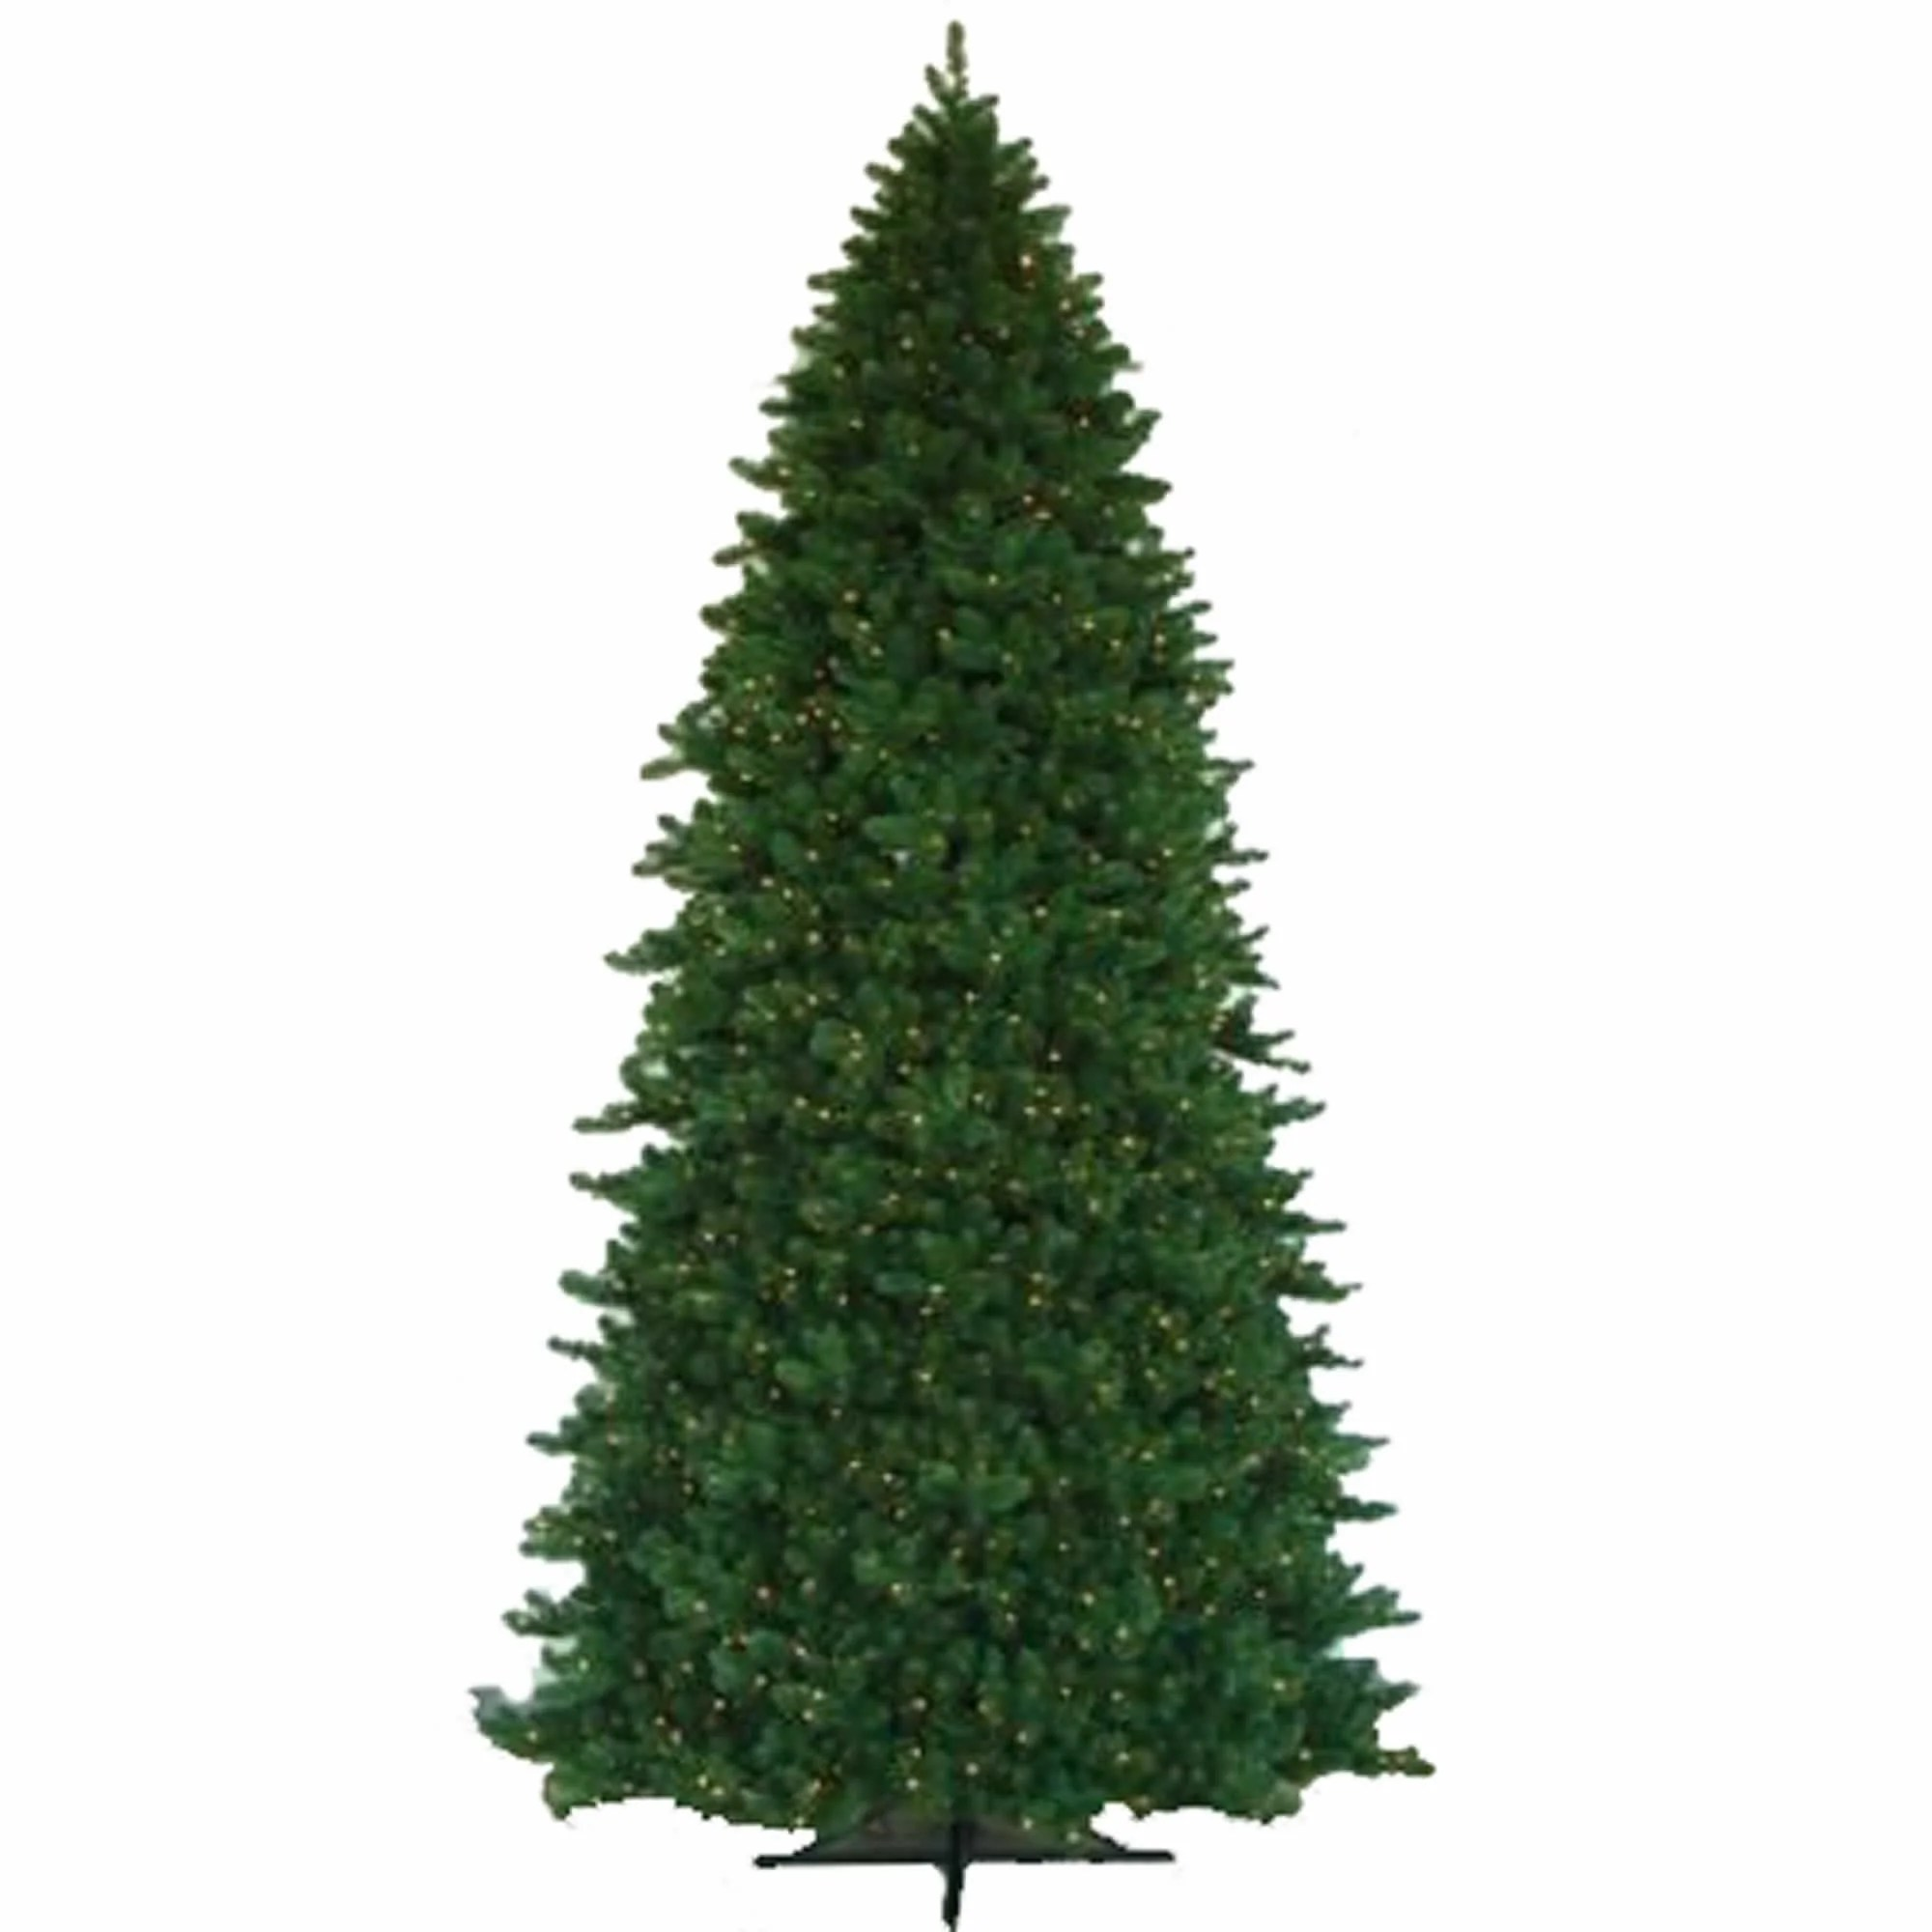 12 Foot Christmas Trees - Ft Artificial Tree Online Santa' Site